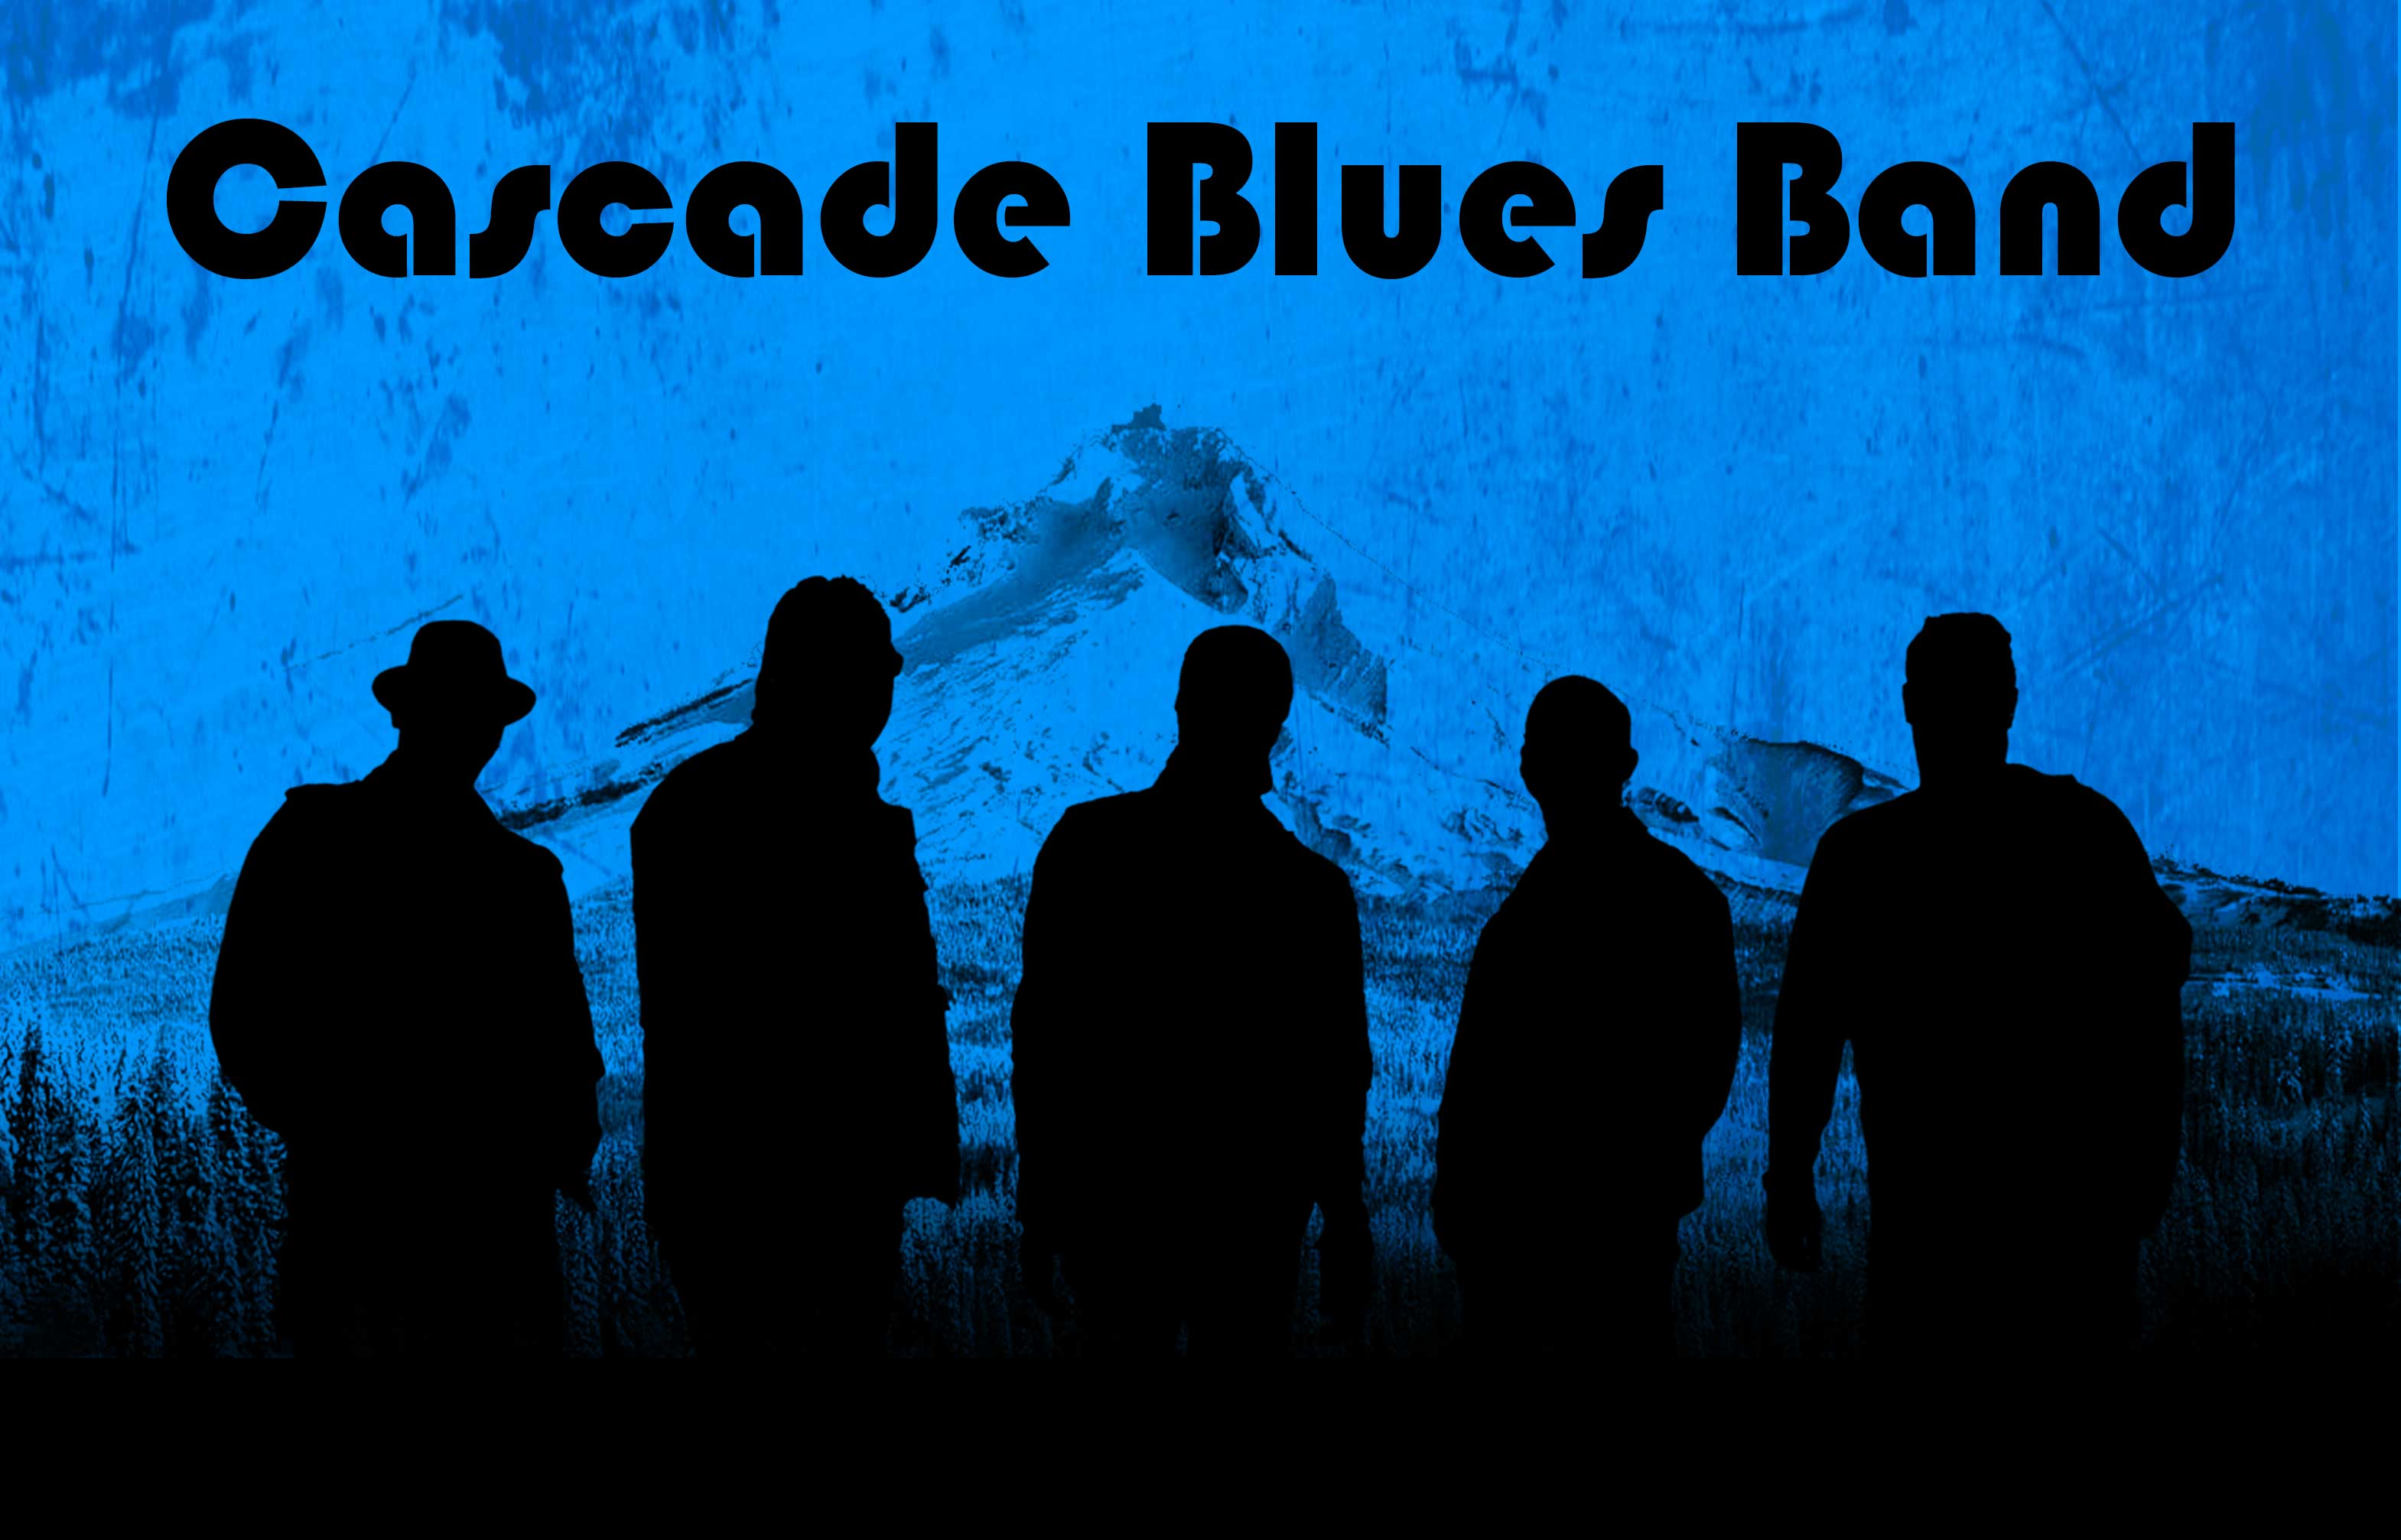 The Cascade Blues Band